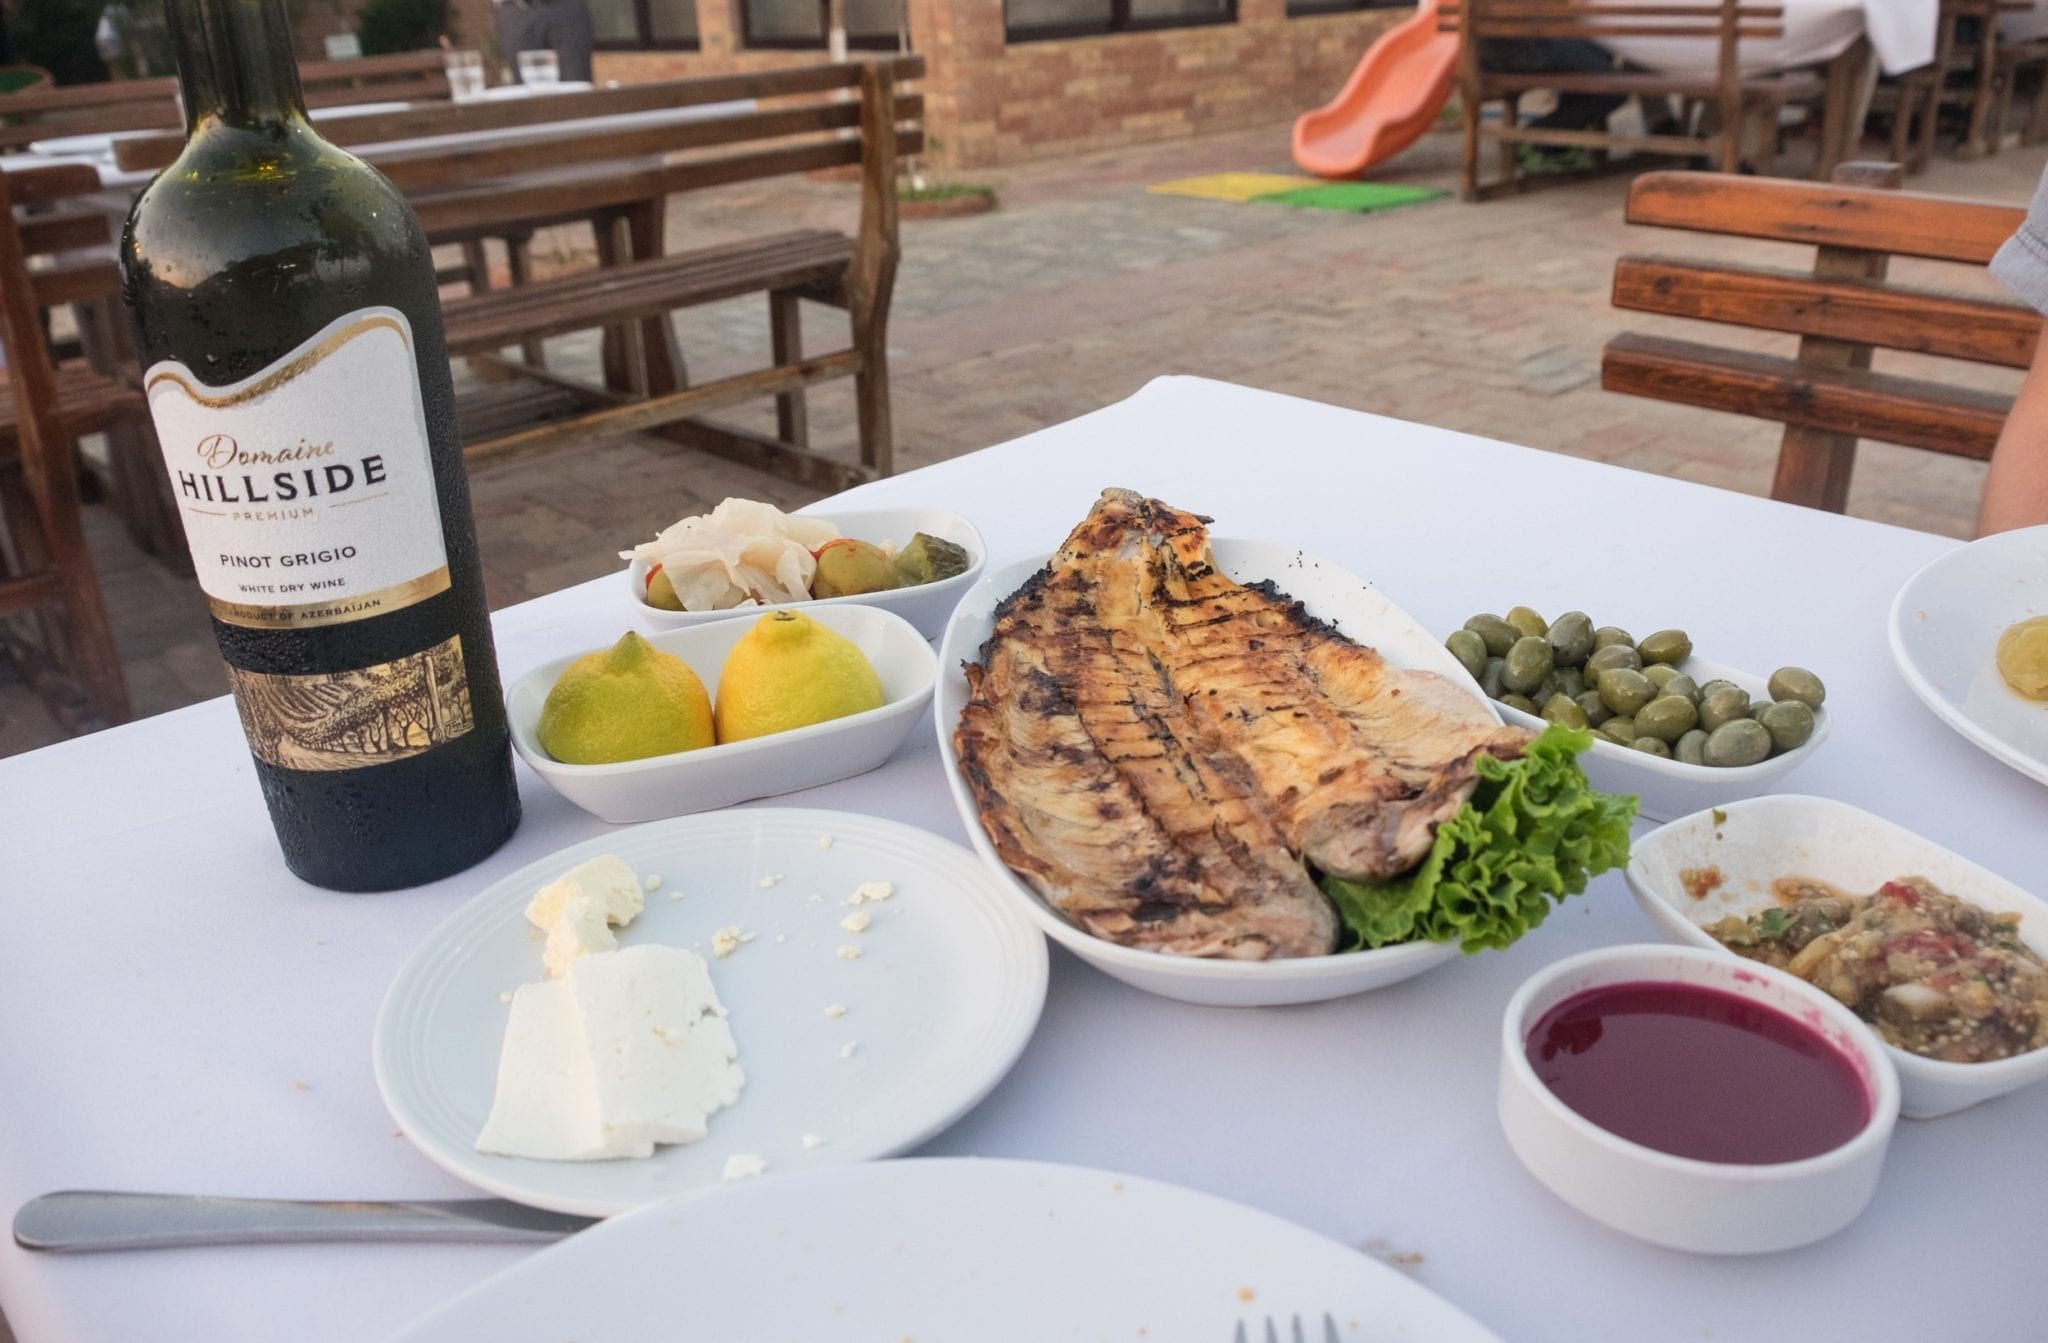 A meal at Derya Fish house: fish, wine, and several vegetable dishes and bread.